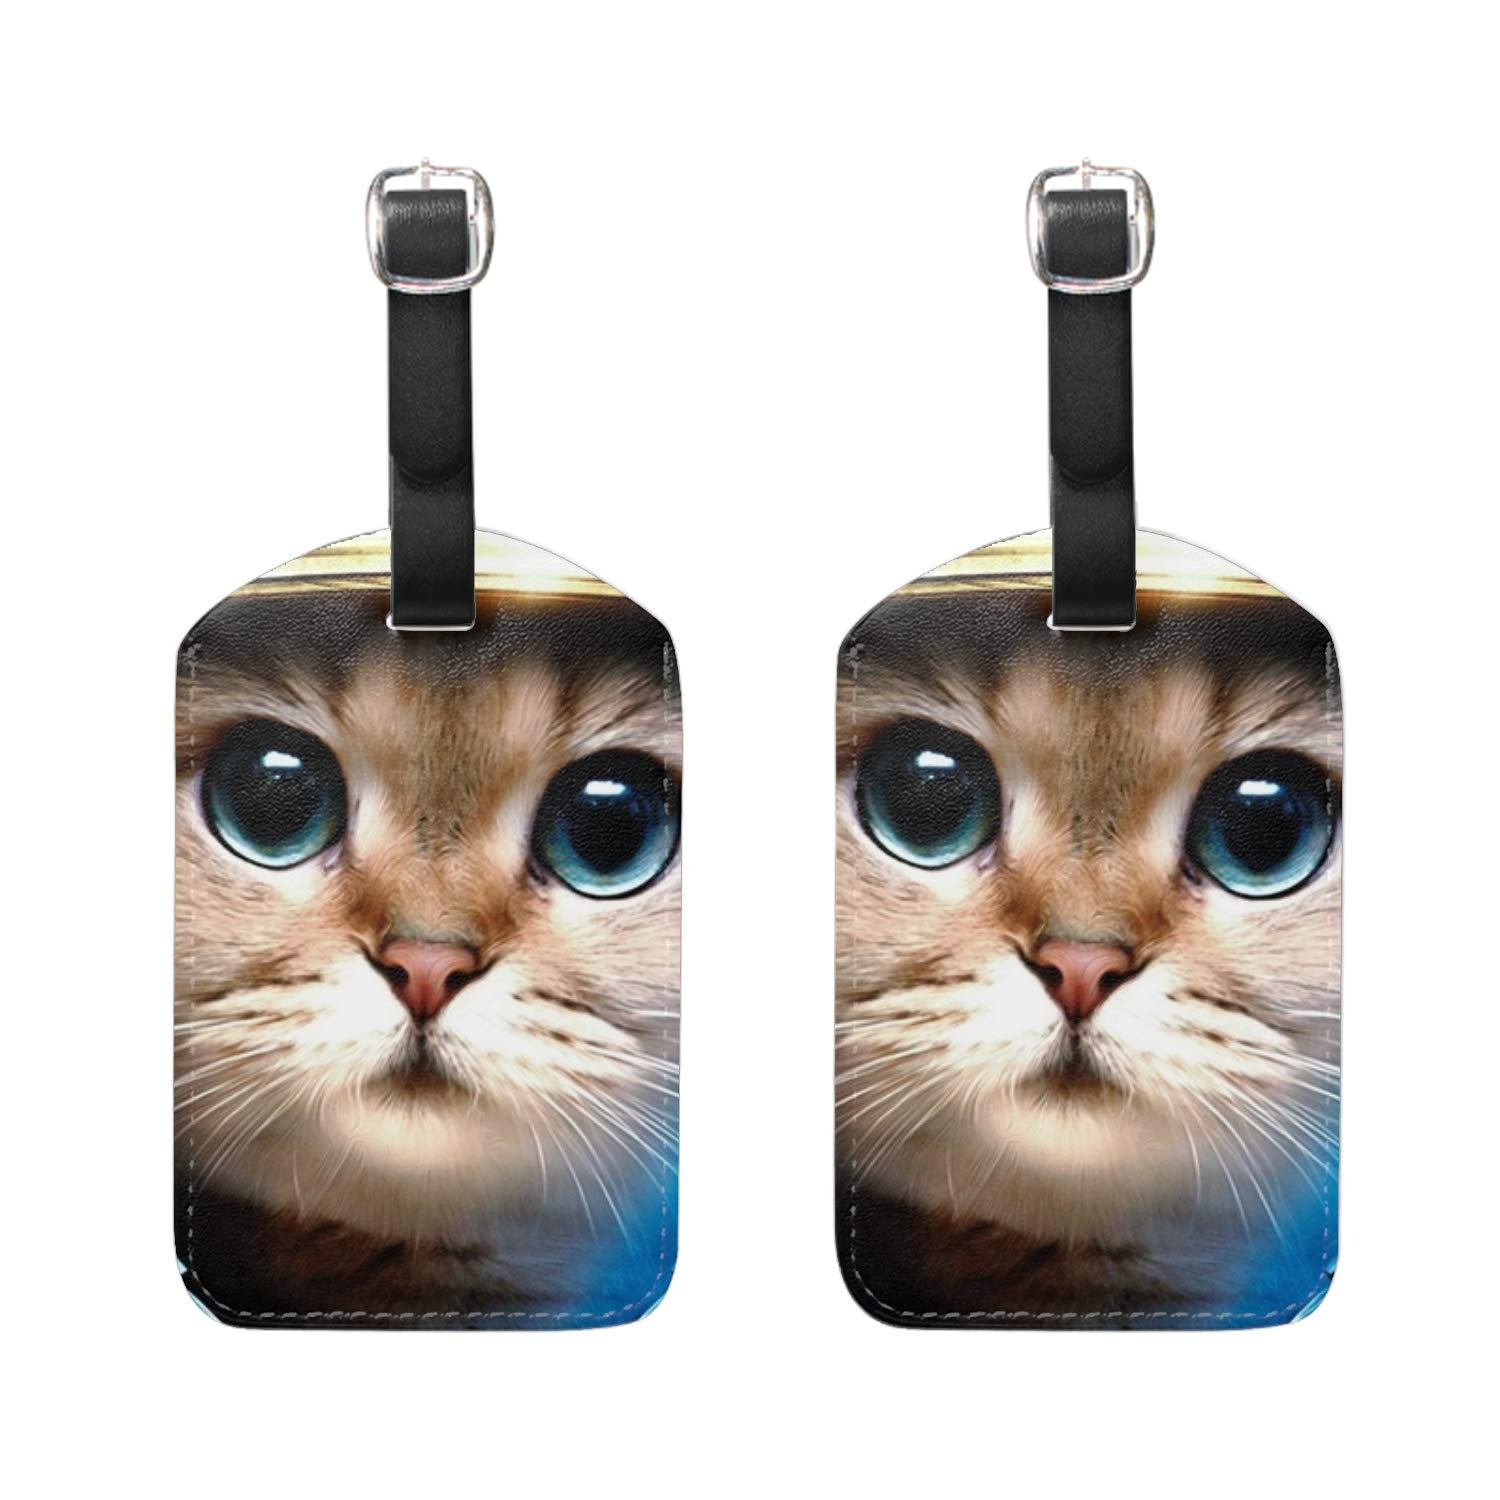 Camouflage Pack Baggage Suitcase Luggage Tags Travel Accessories Set of 2